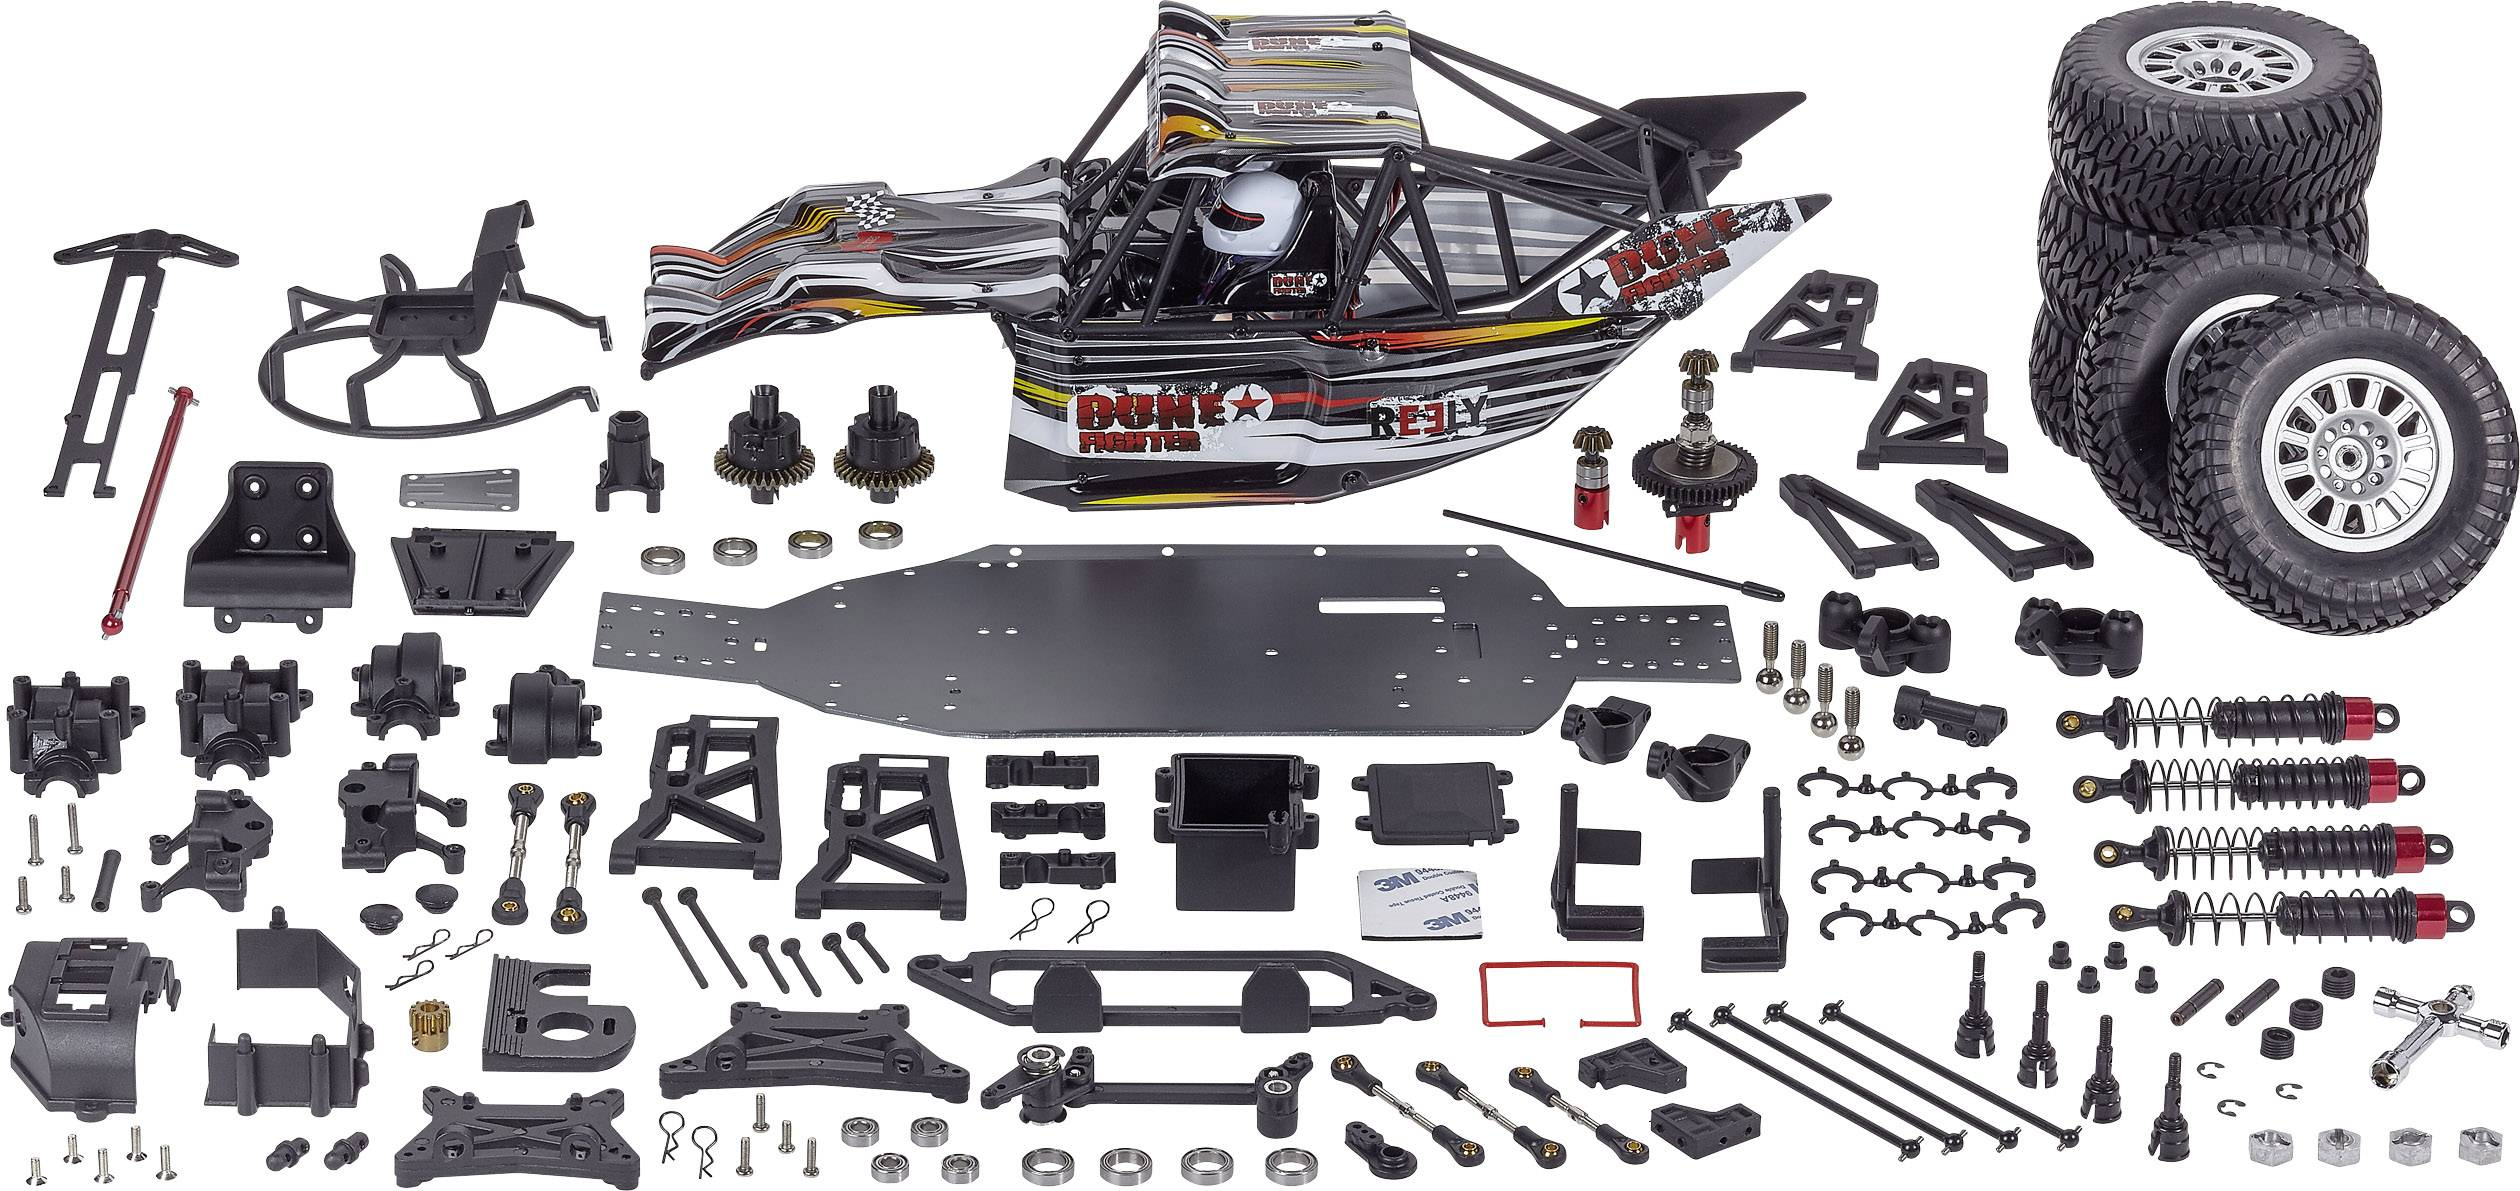 reely dune fighter 1 10 rc model car electric buggy 4wd kit